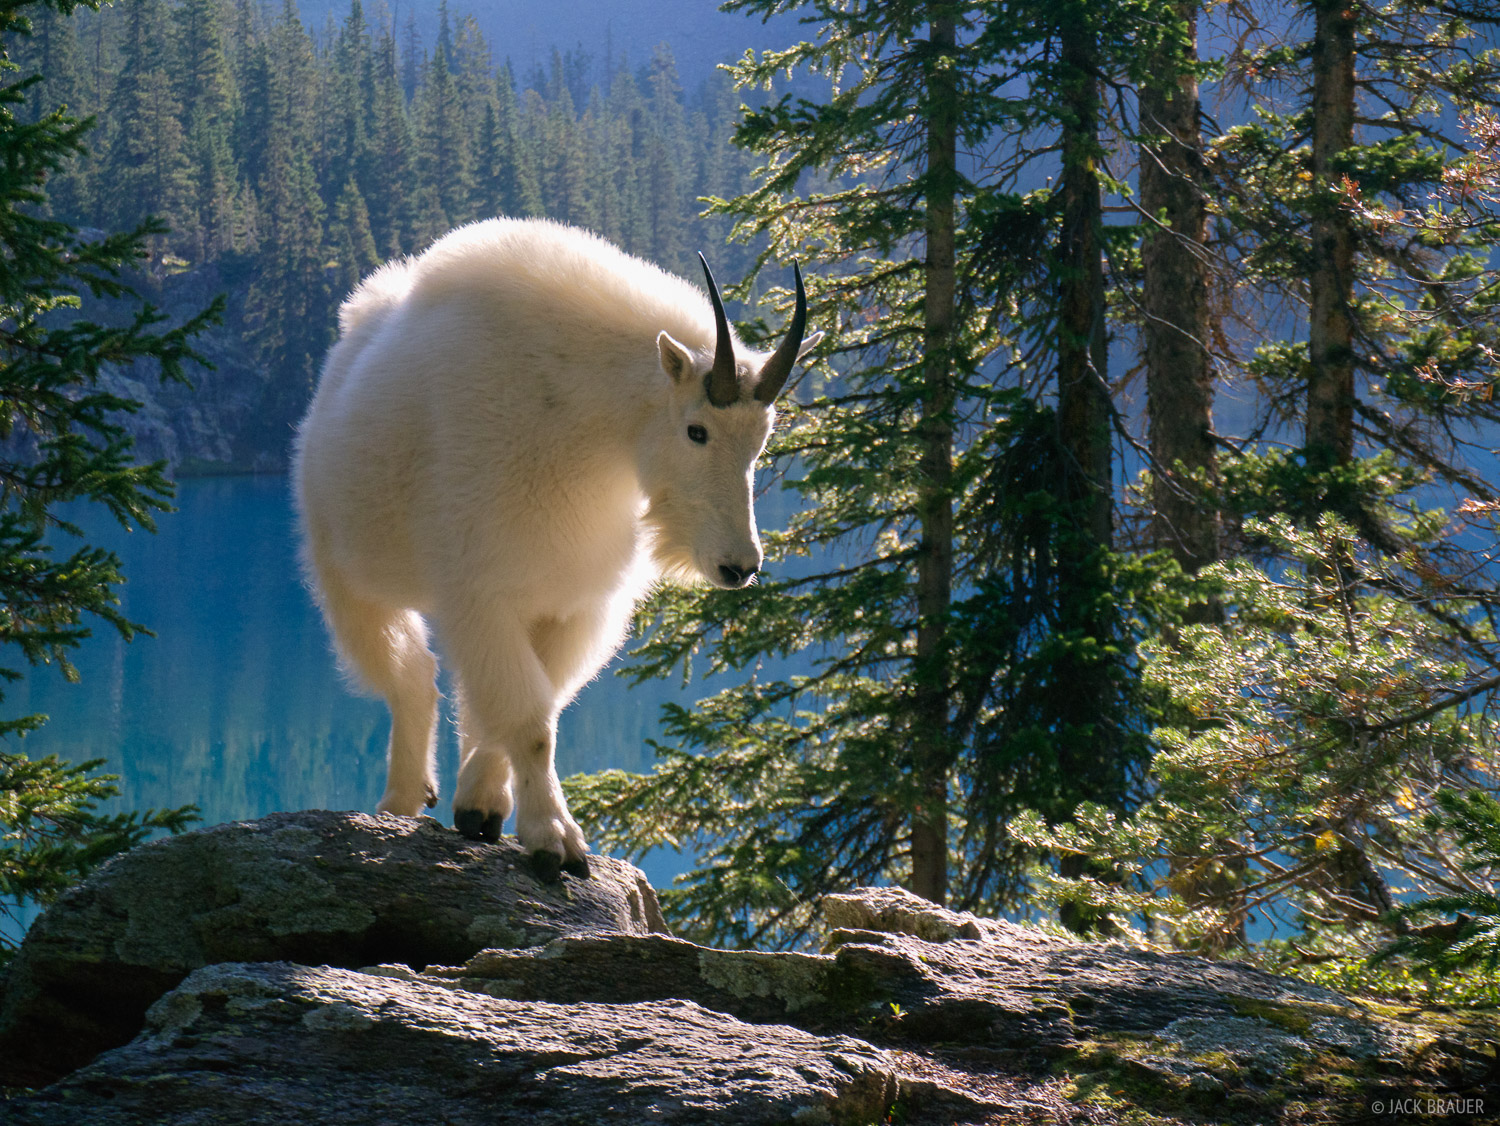 Mountain goat, Weminuche Wilderness, San Juan Mountains, Colorado, photo